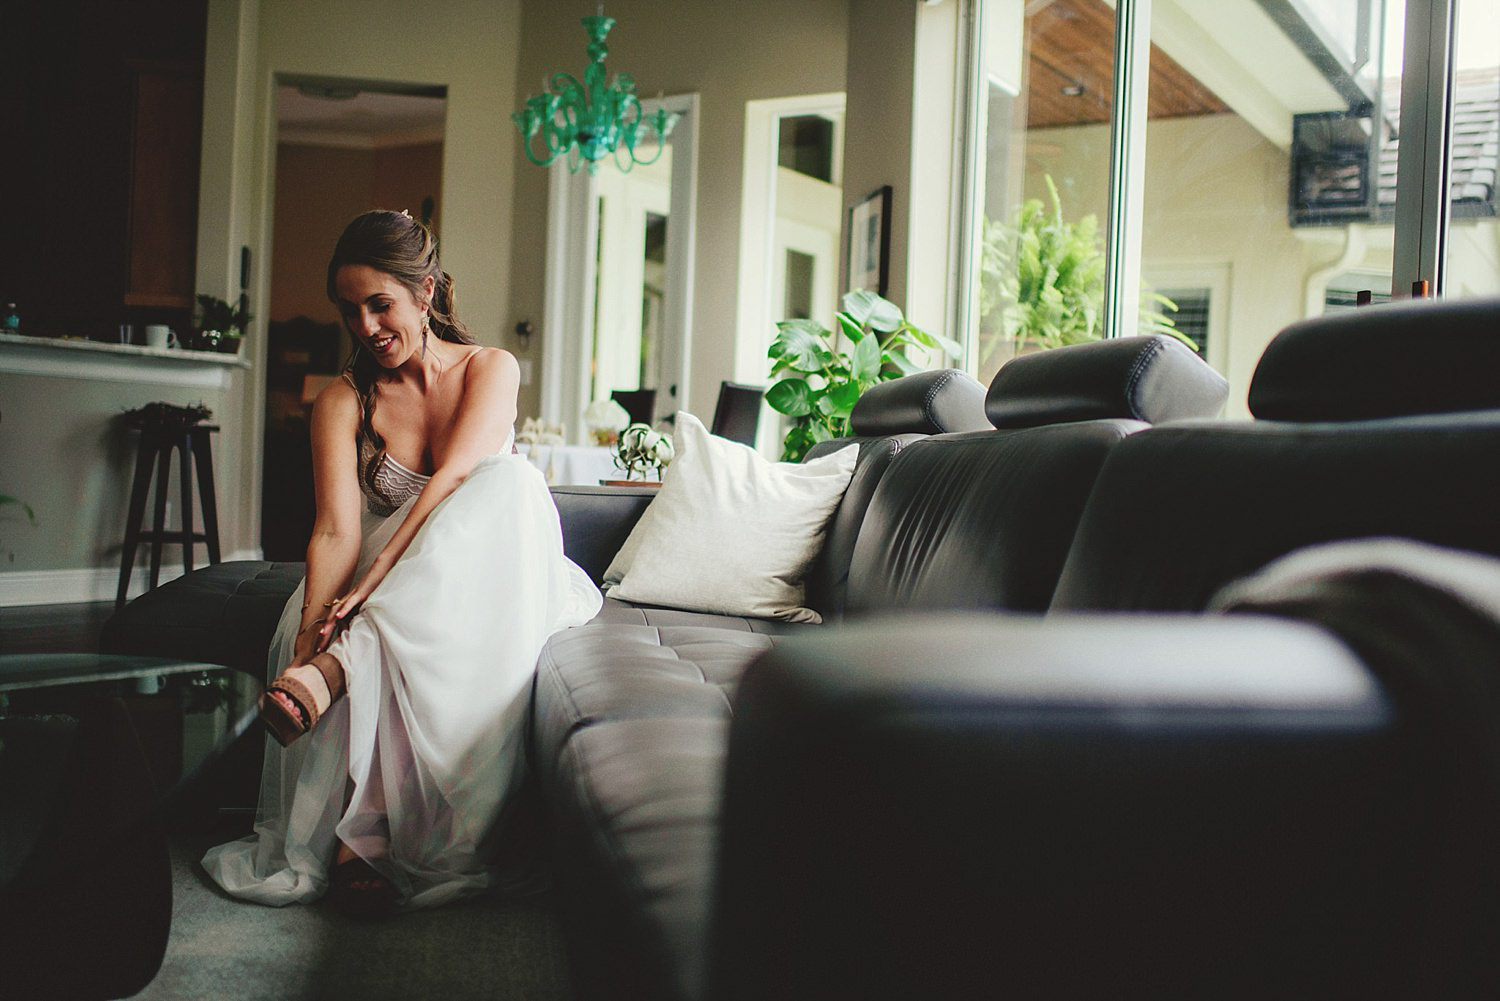 knowles memorial chapel wedding: bride putting on shoes